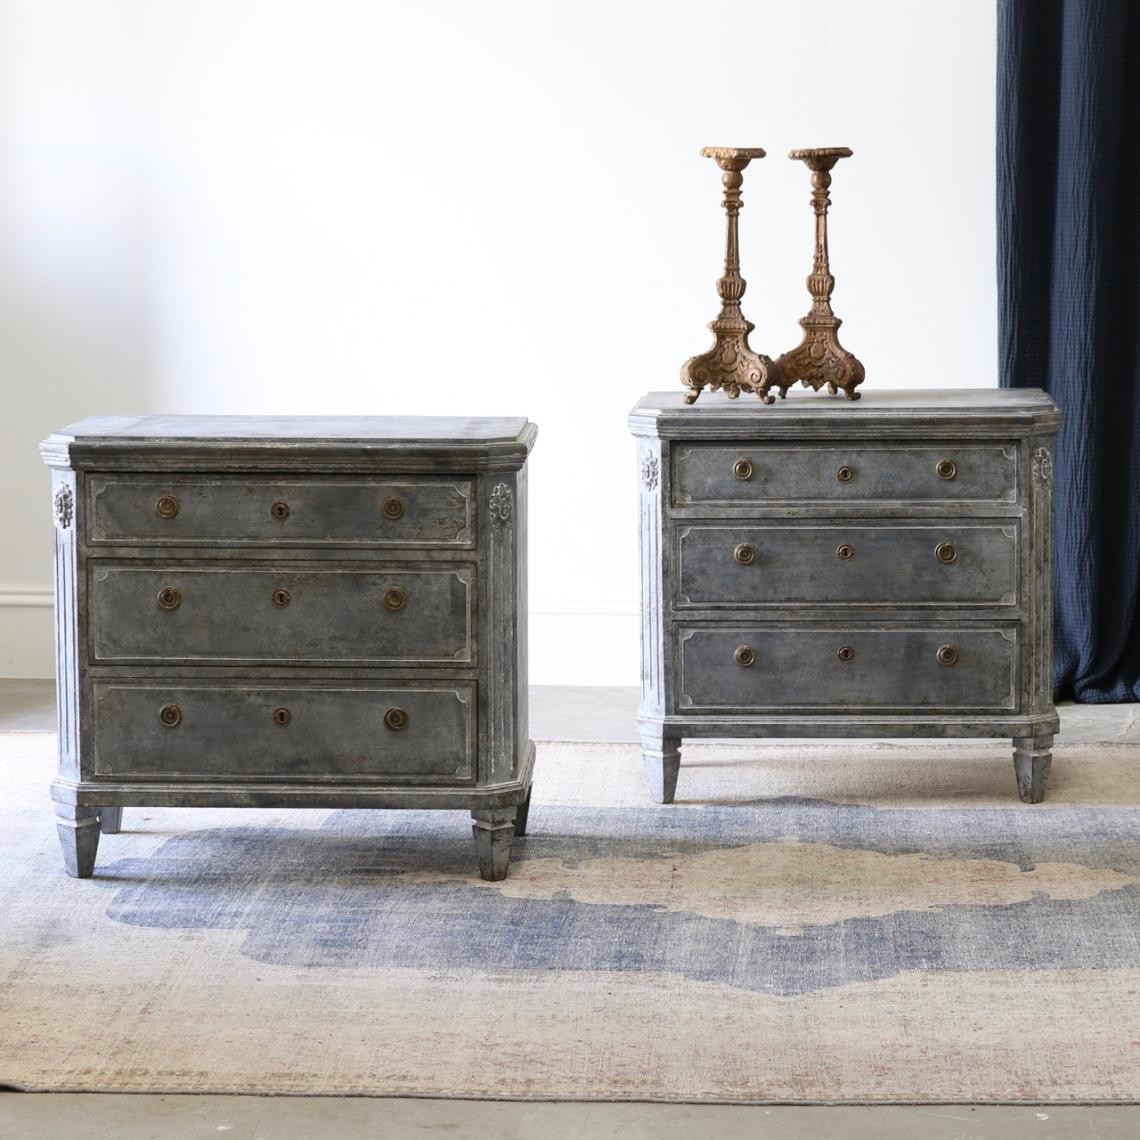 112-85 - Pair of Swedish Commodes